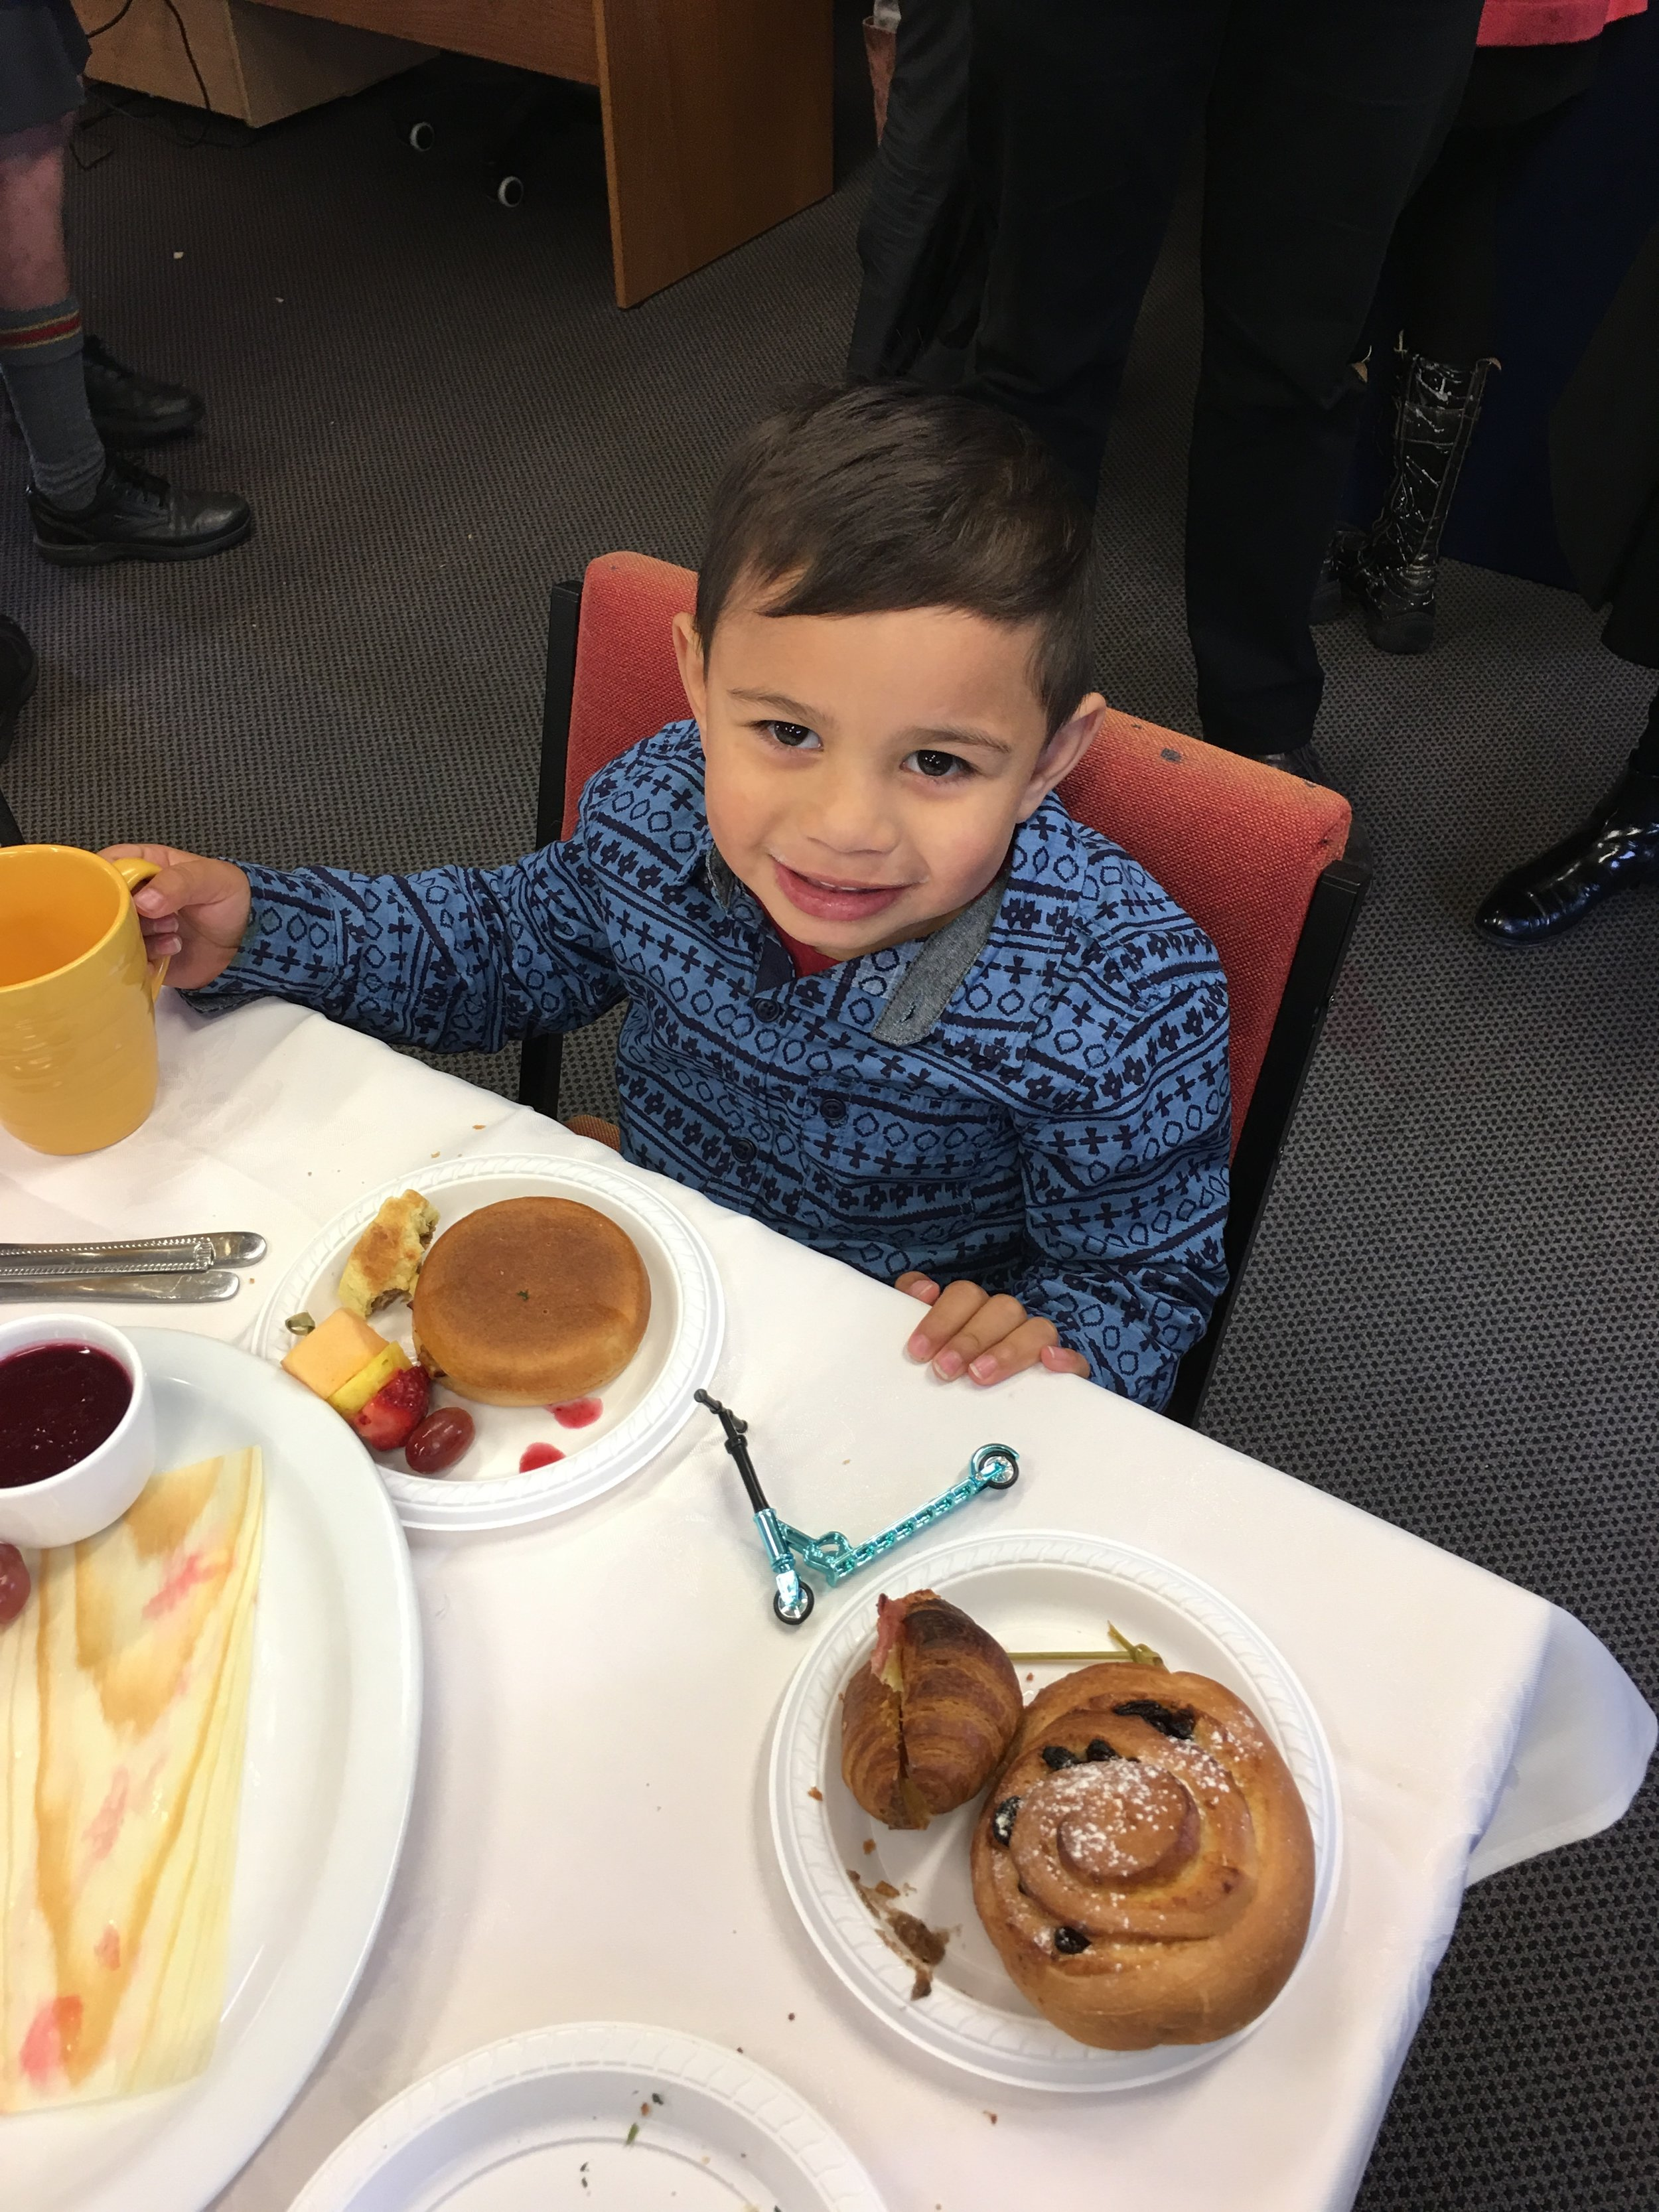 William enjoyed his breakfast almost as much as me!